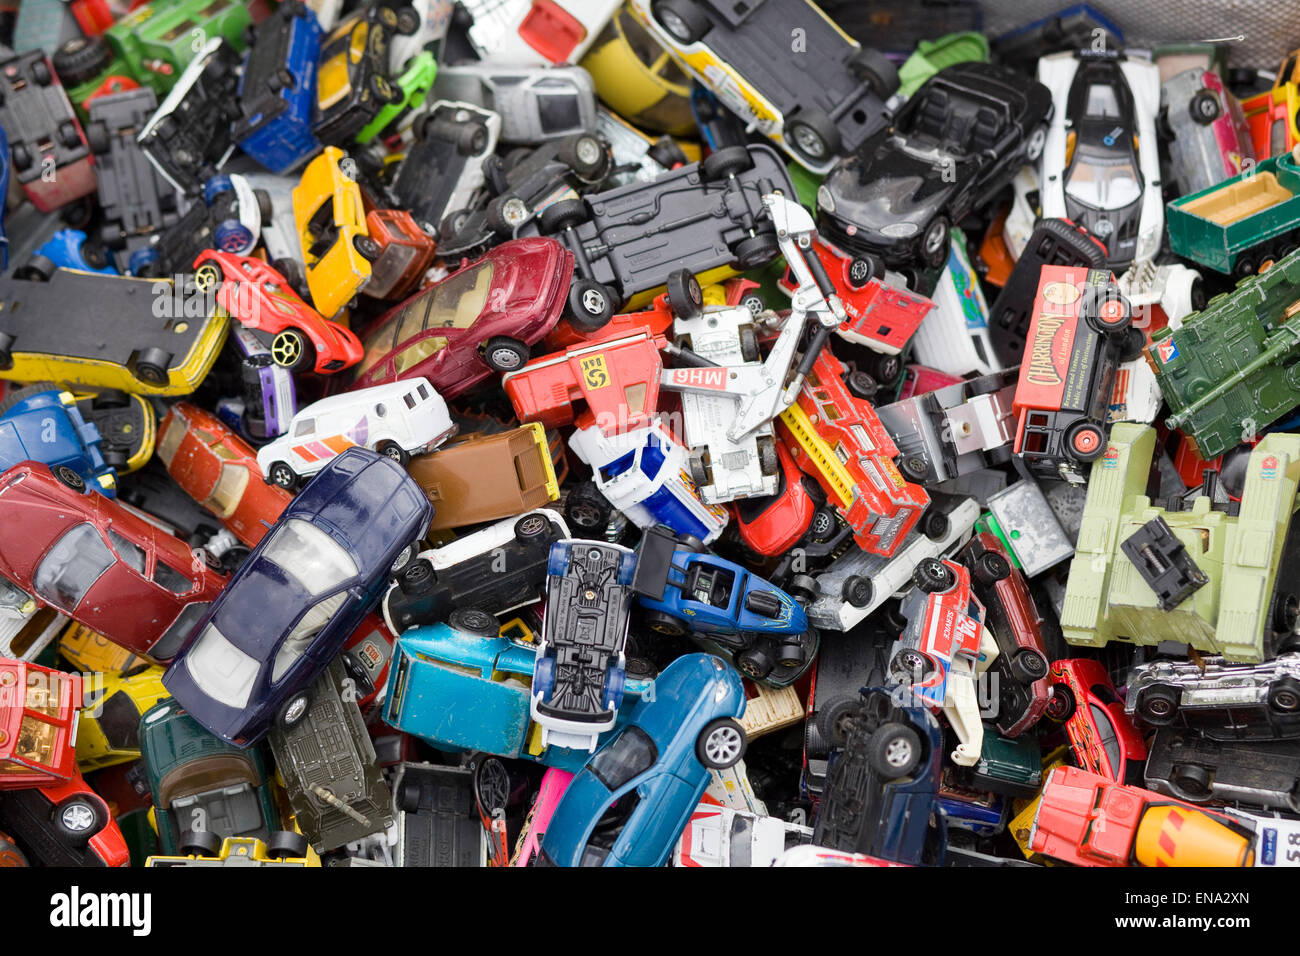 Old Ambulance For Sale >> Assortment of toy cars in a pile Stock Photo: 81971085 - Alamy